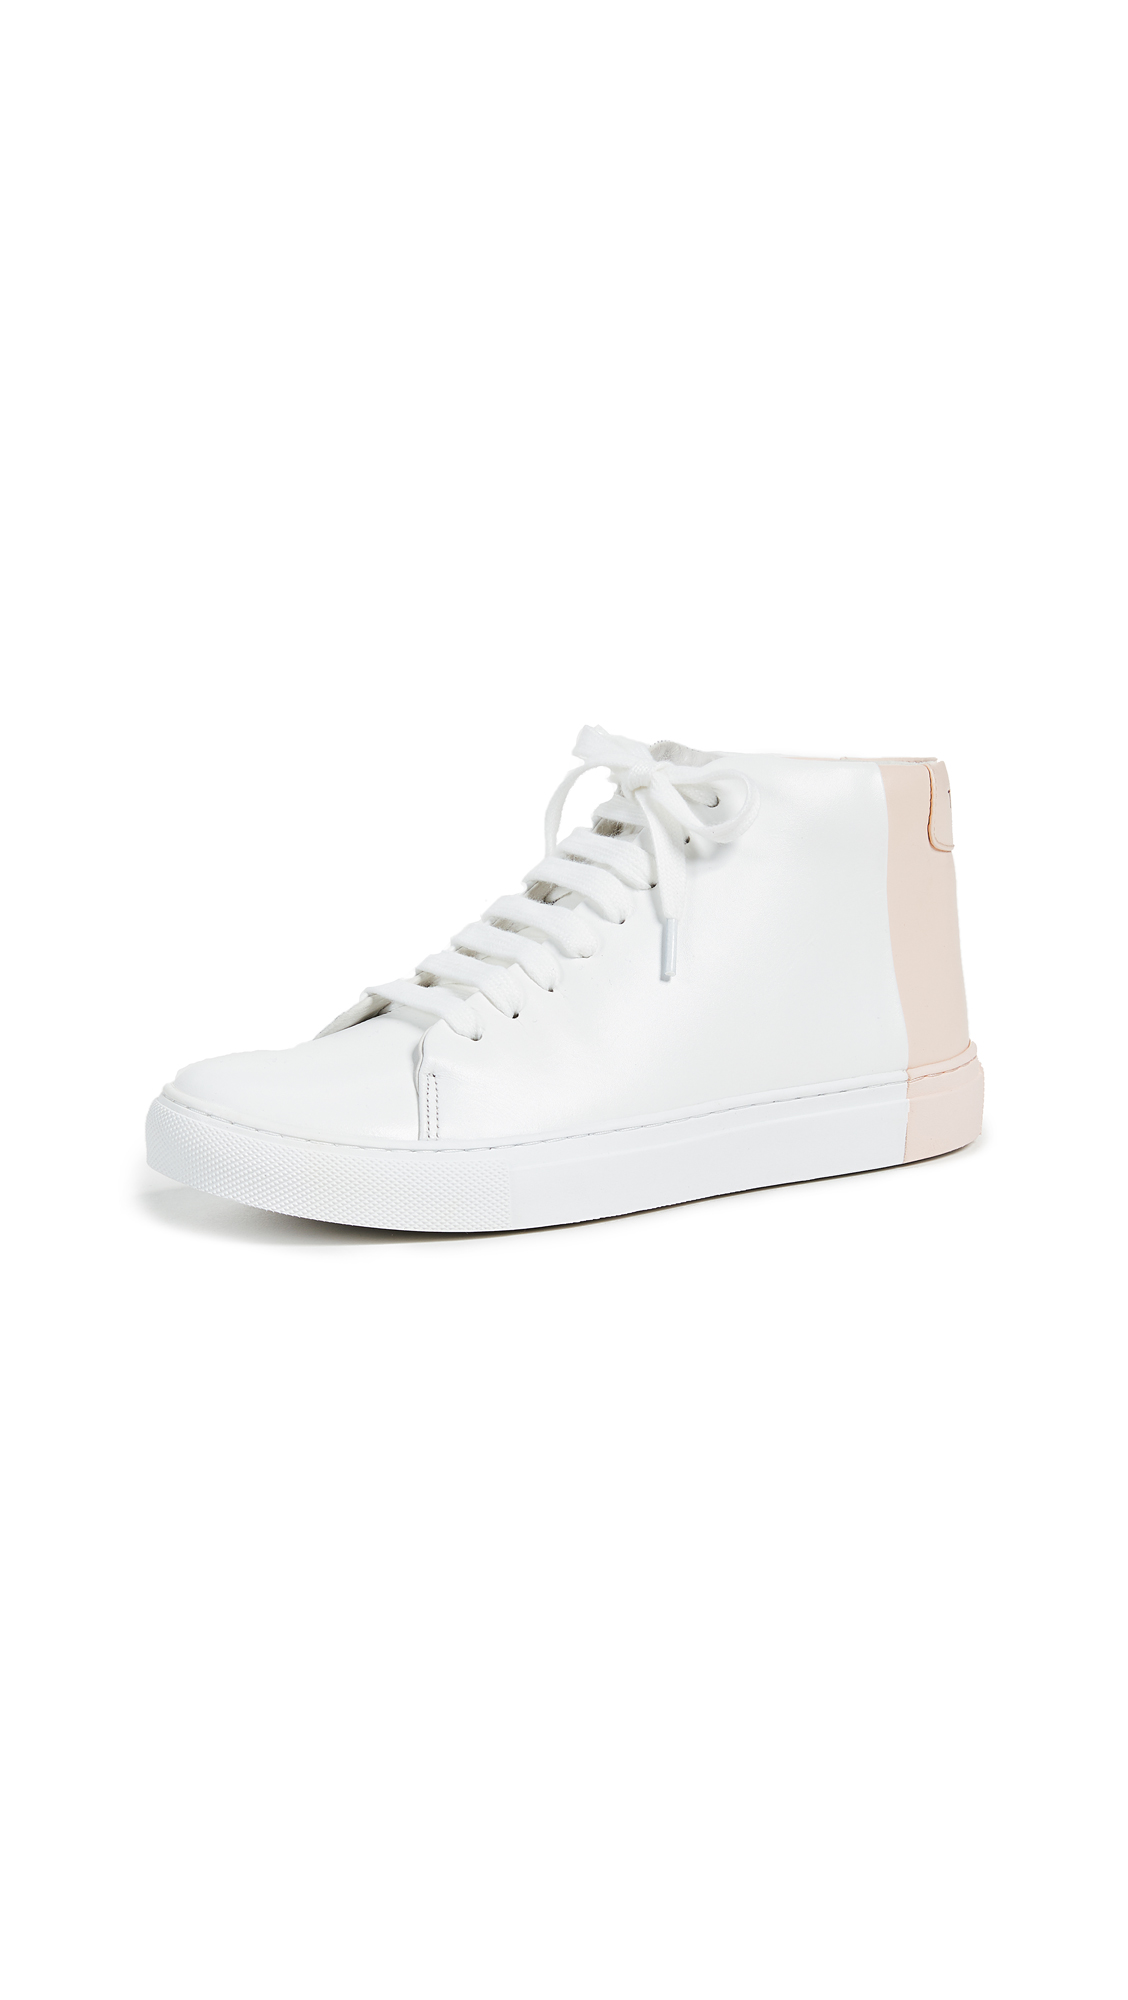 THEY NEW YORK Two Tone Mid Sneakers - White/Blush